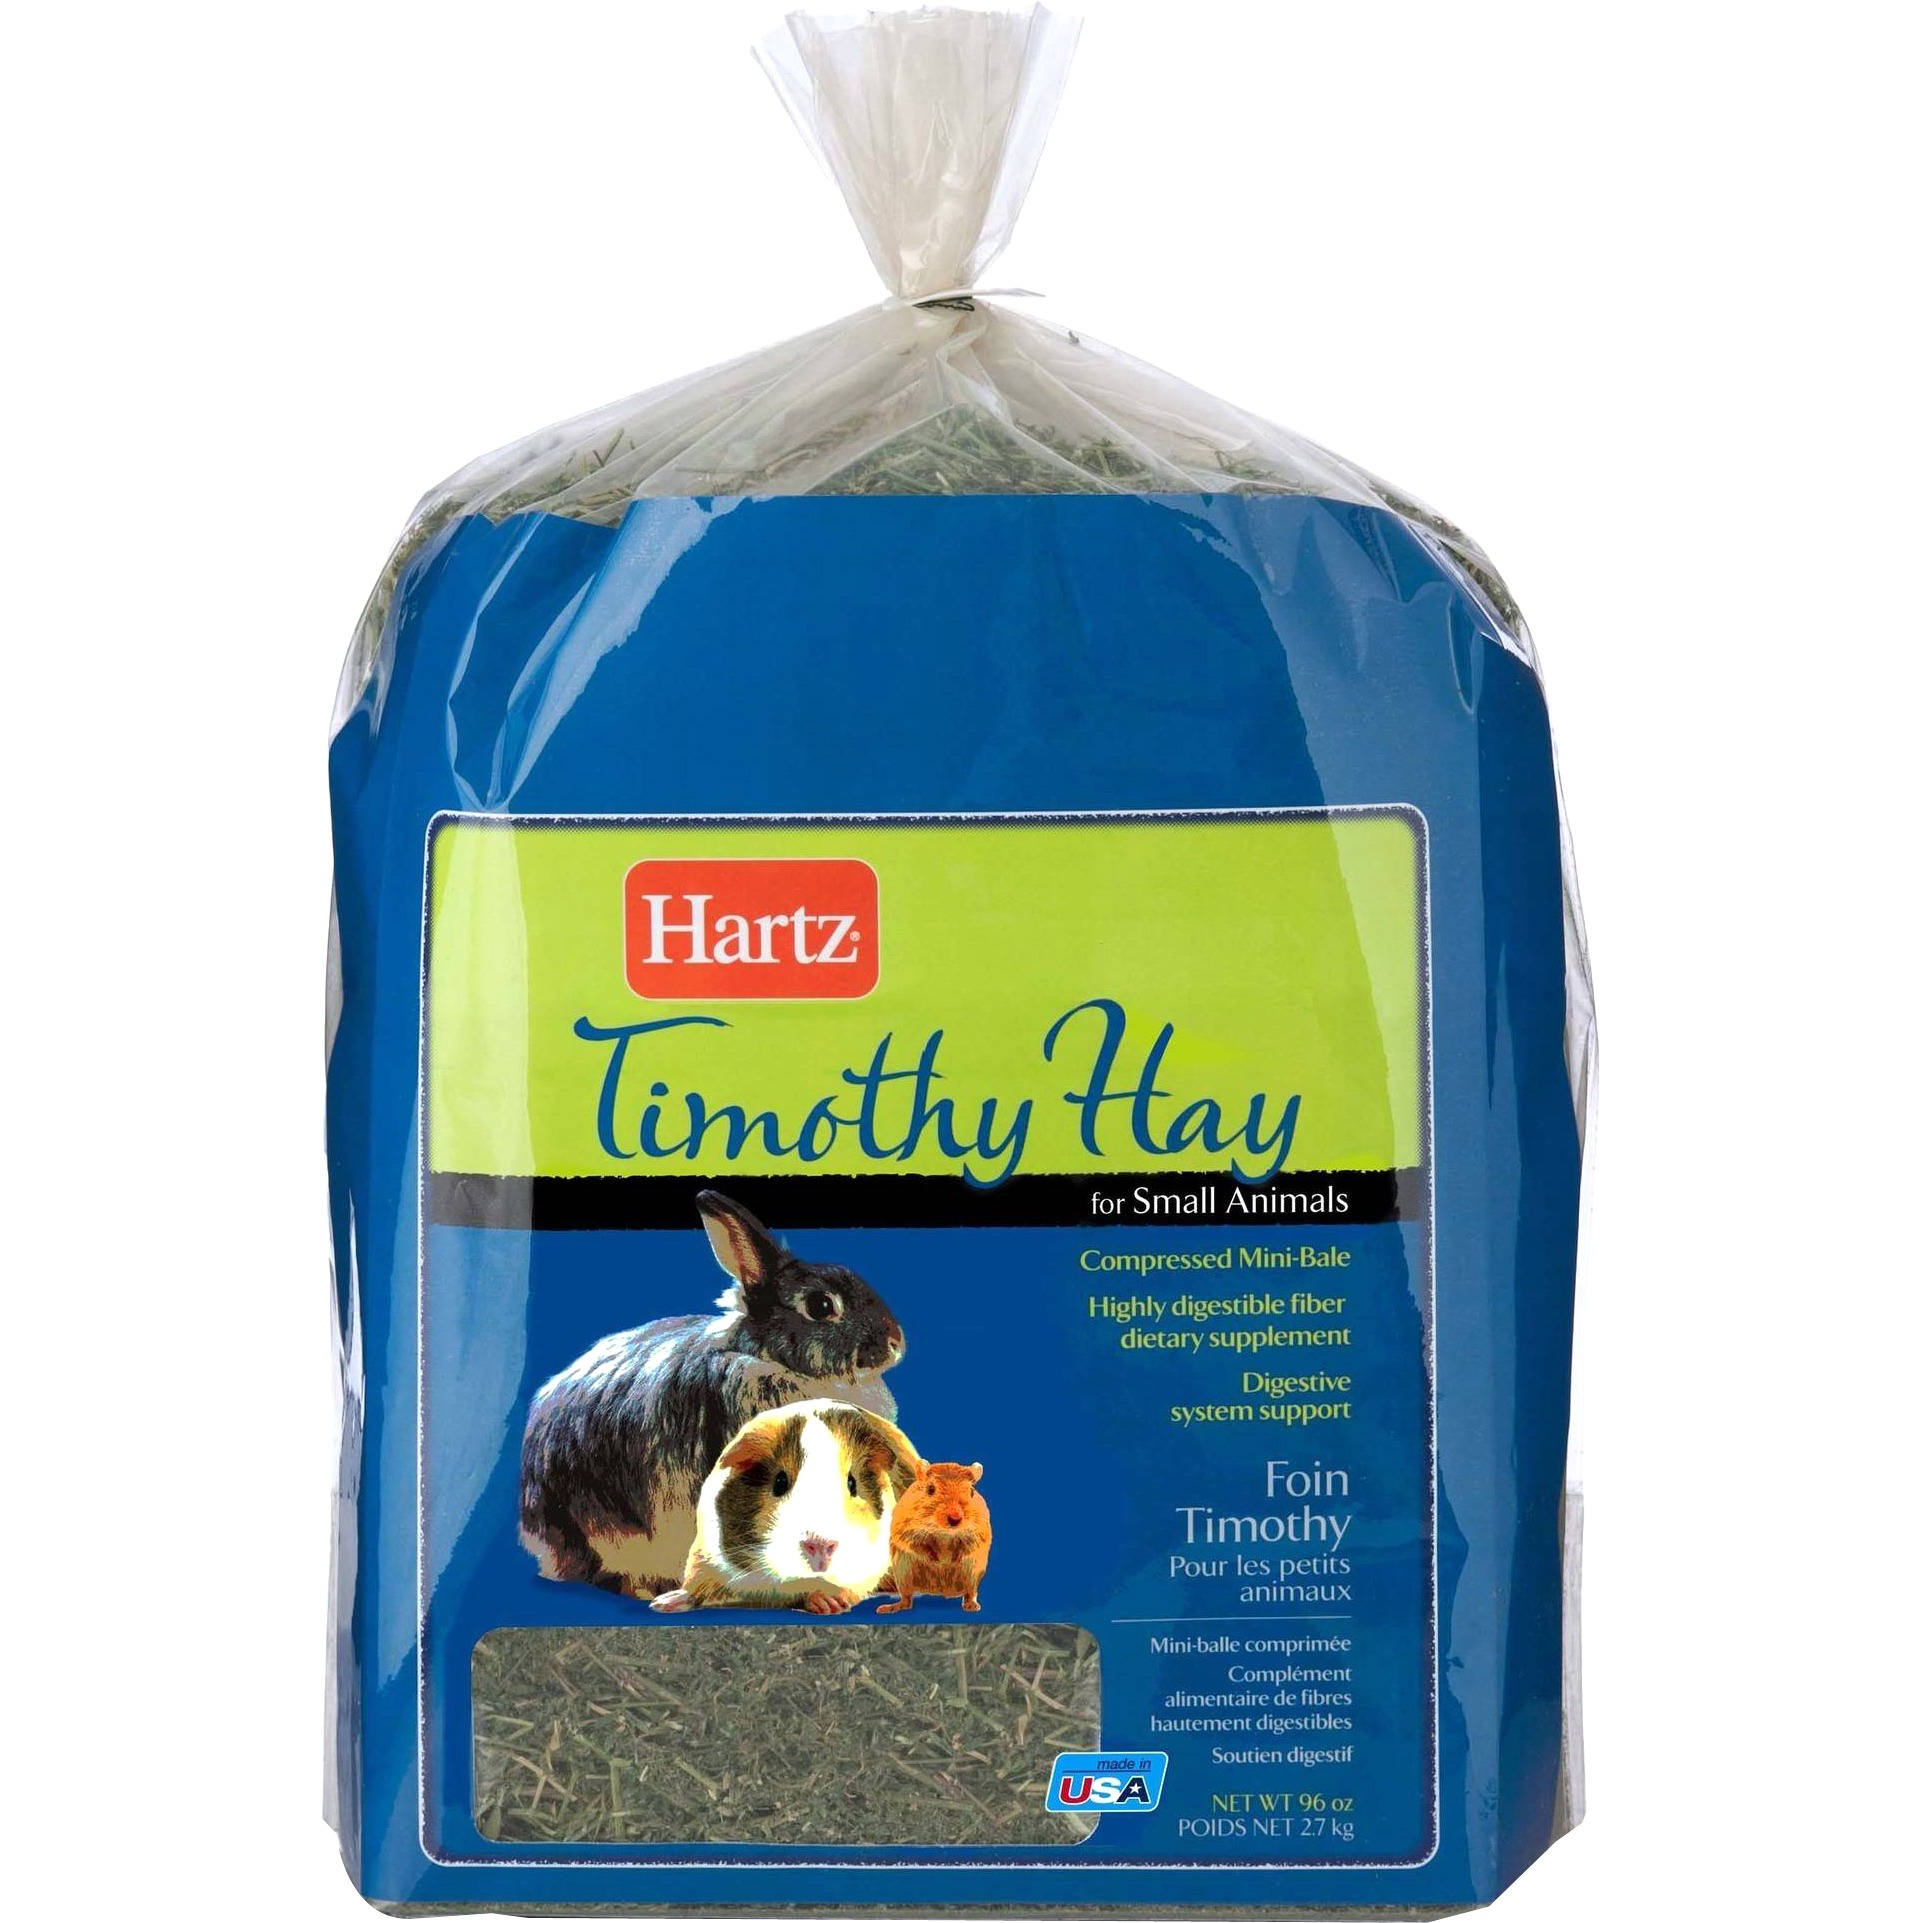 Hartz Ultra Timothy Hay, 96 oz